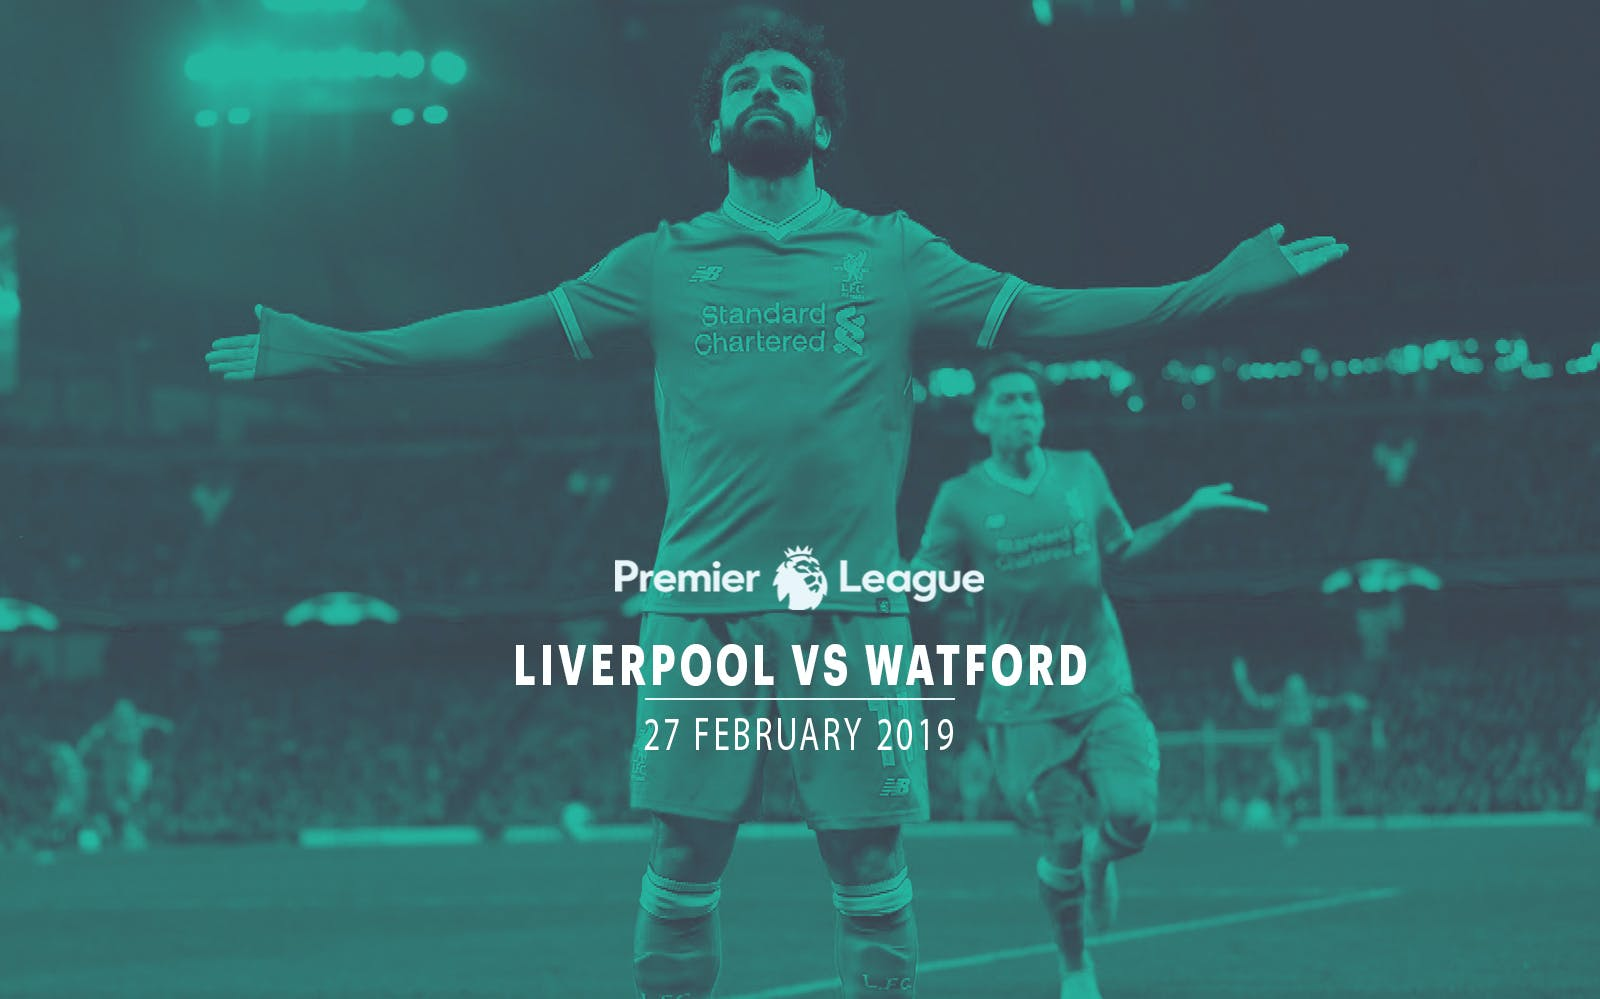 Liverpool vs Watford - 27th Feb'19